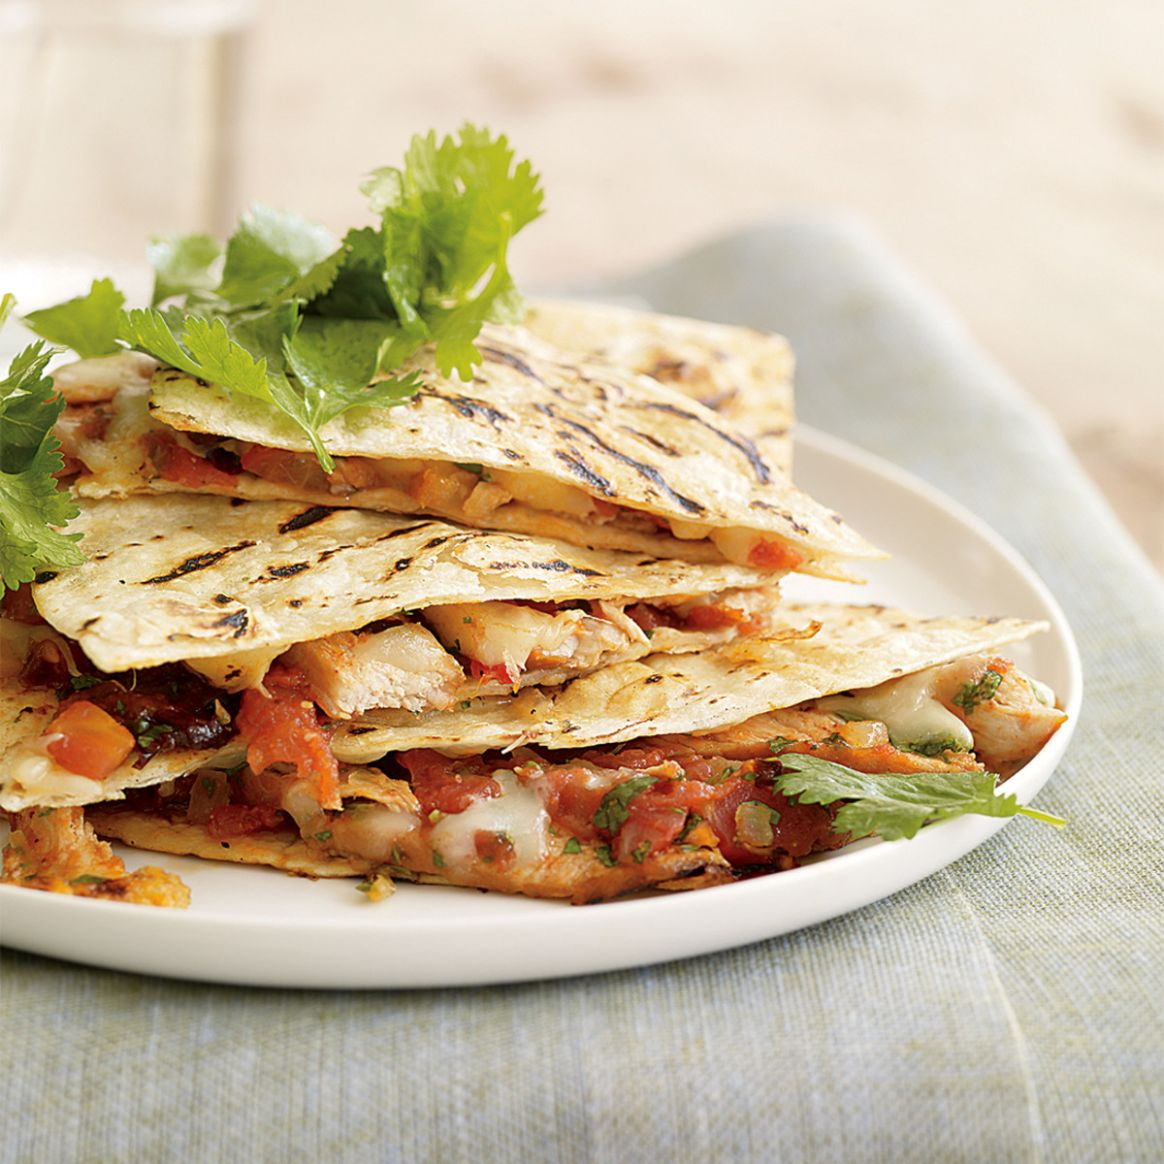 Chipotle Pork Quesadillas - Recipe Pork Quesadillas